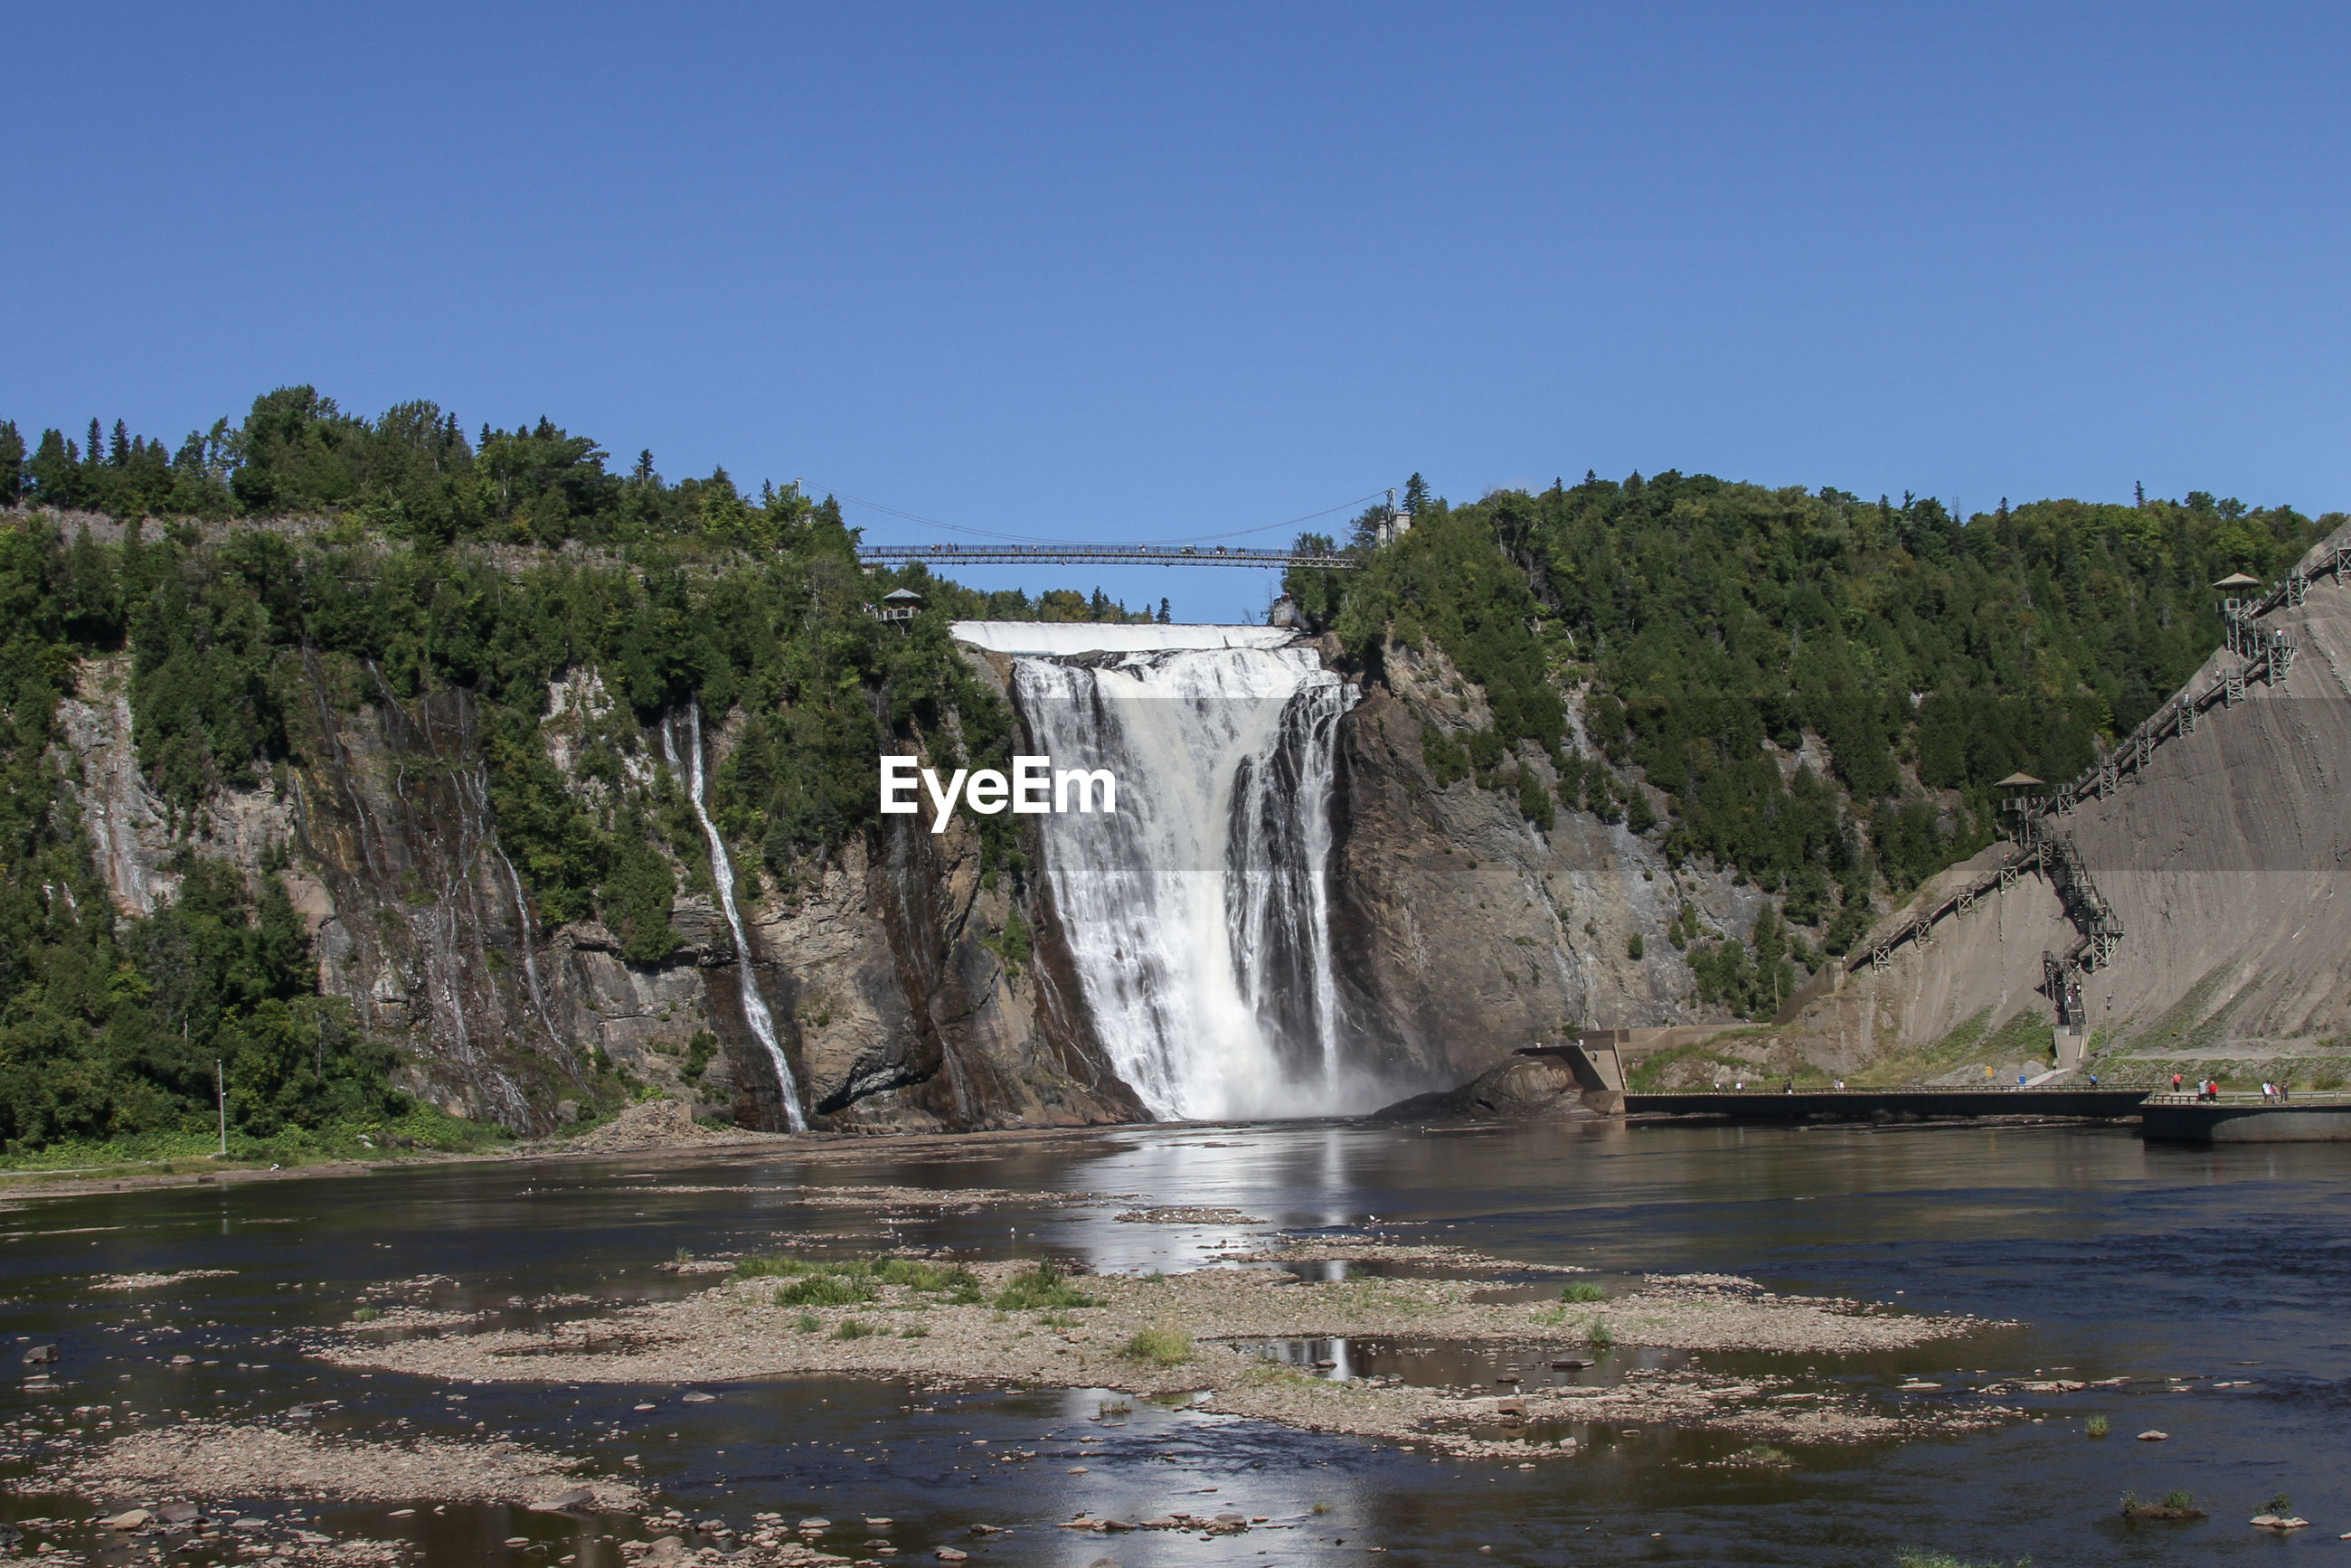 VIEW OF WATERFALL AGAINST CLEAR BLUE SKY